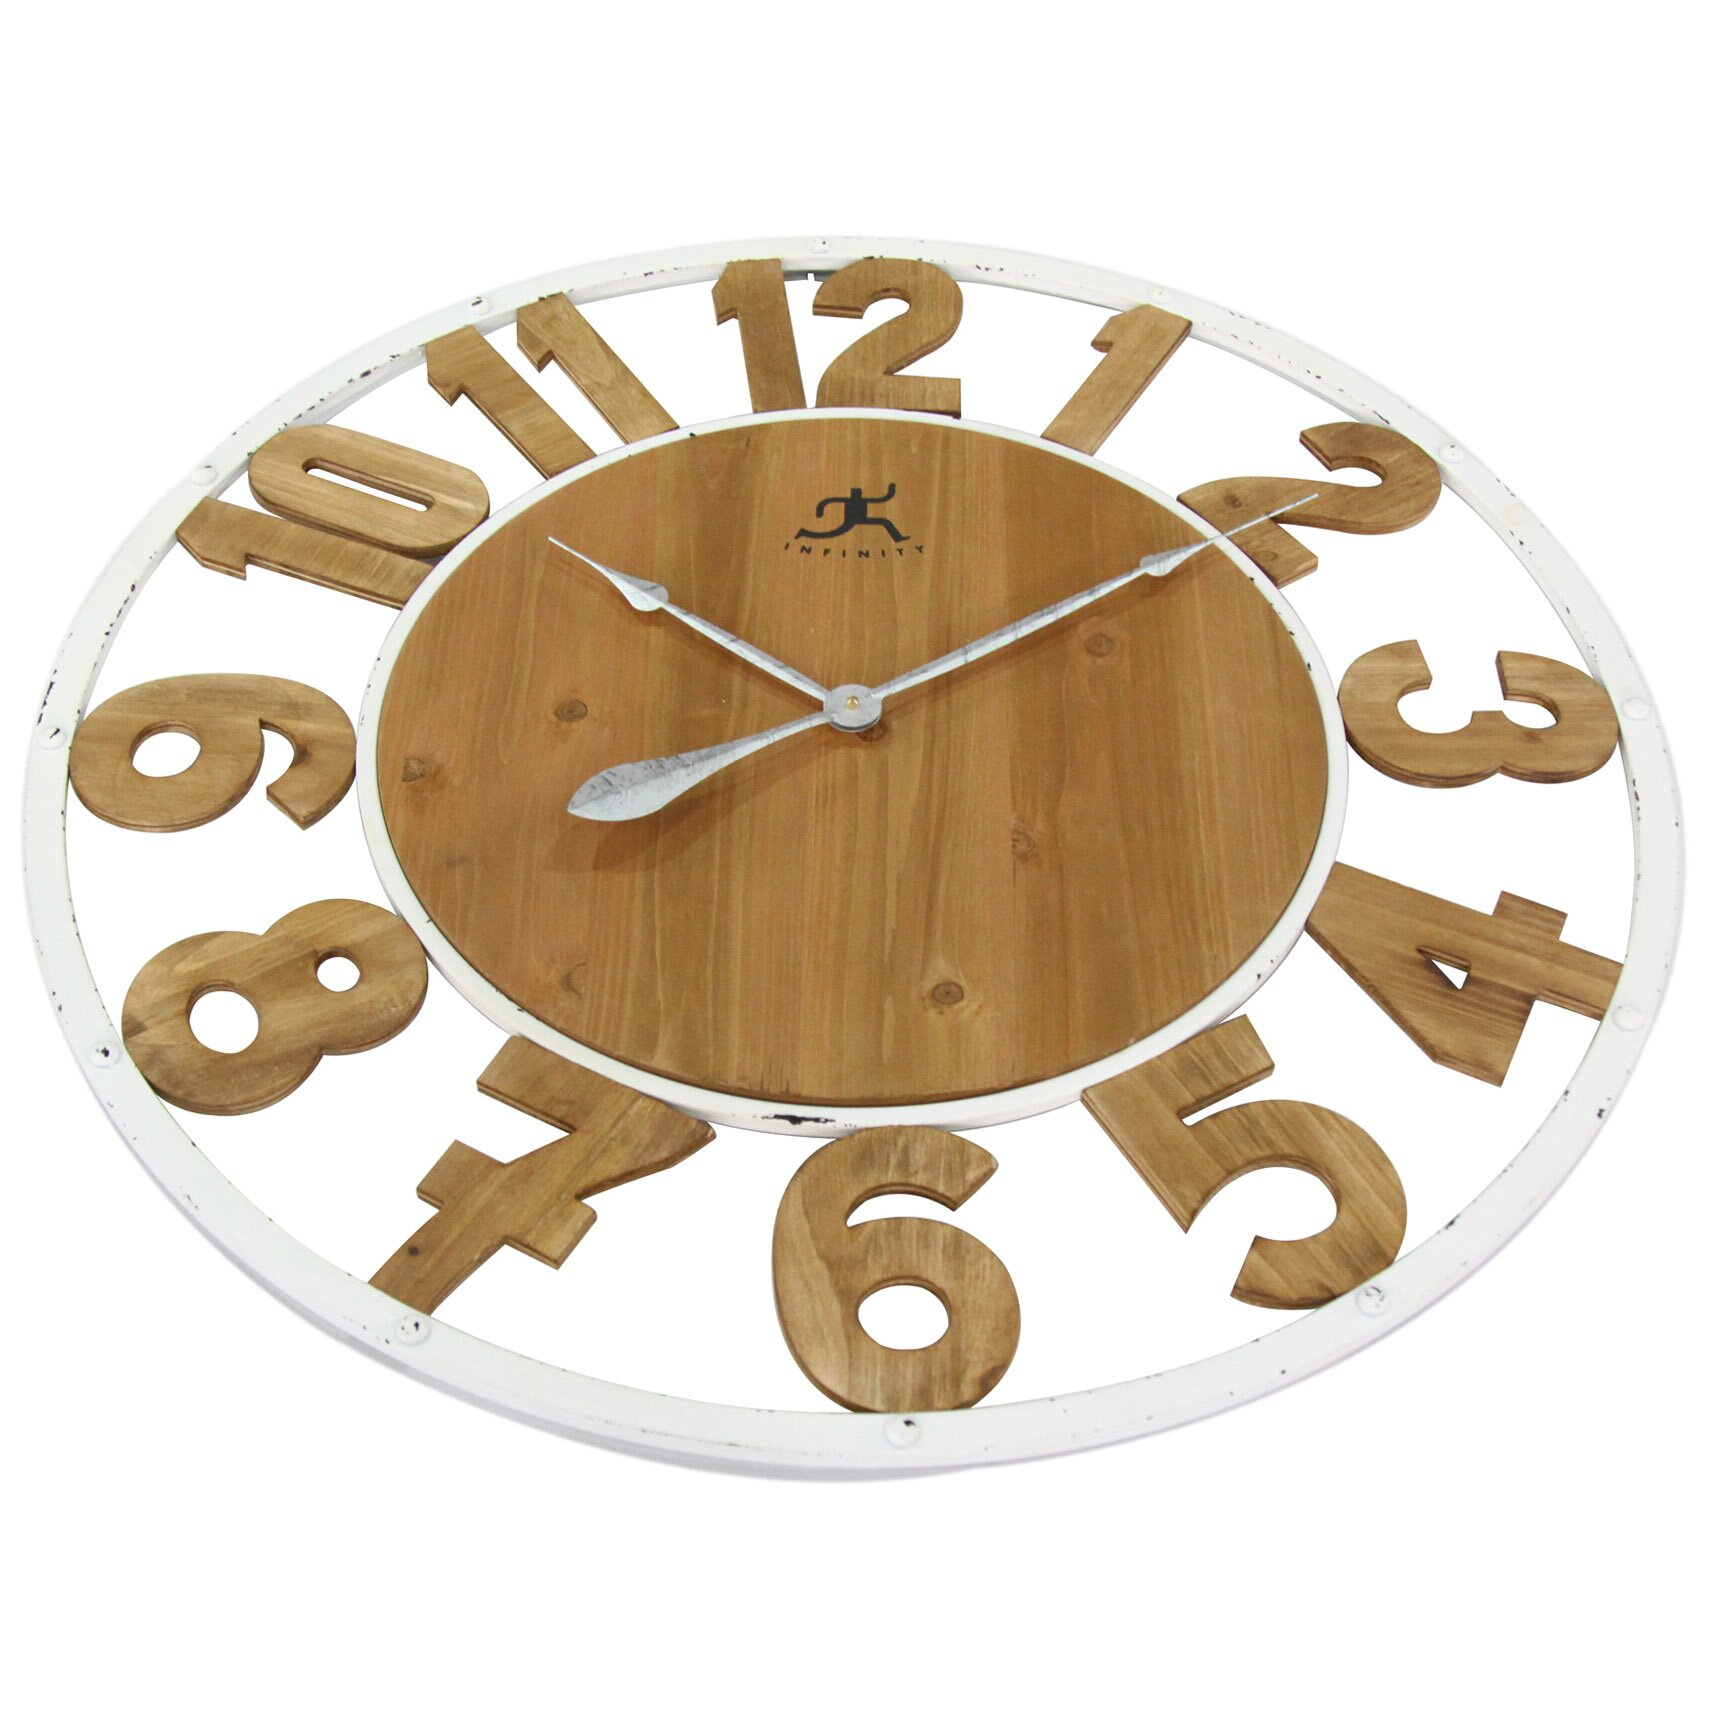 Laurel foundry modern farmhouse oversized 32 wall clock - Oversized modern wall clock ...